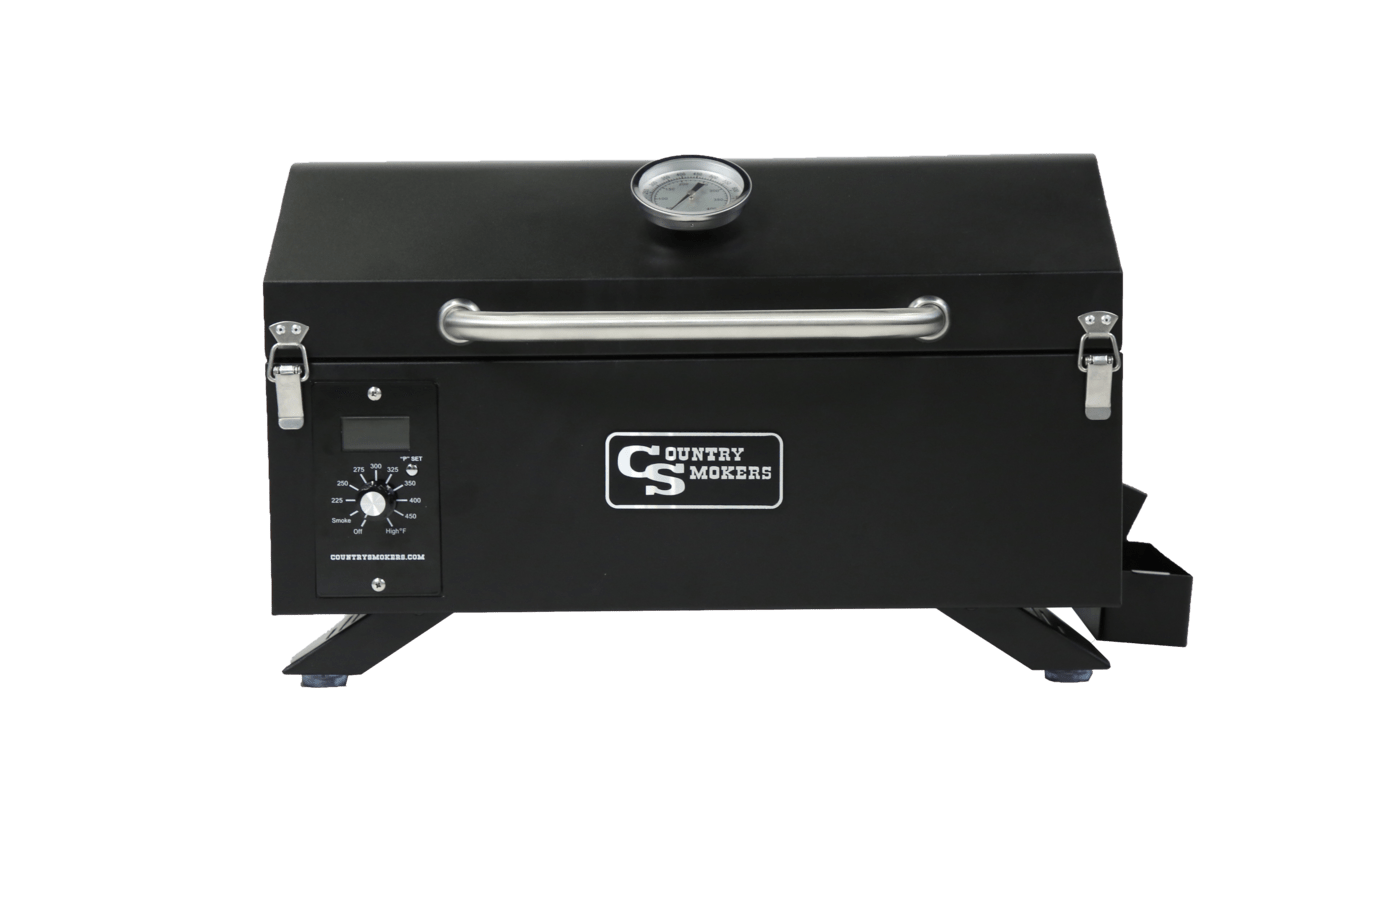 Country Smokers The Traveler Portable Pellet Grill